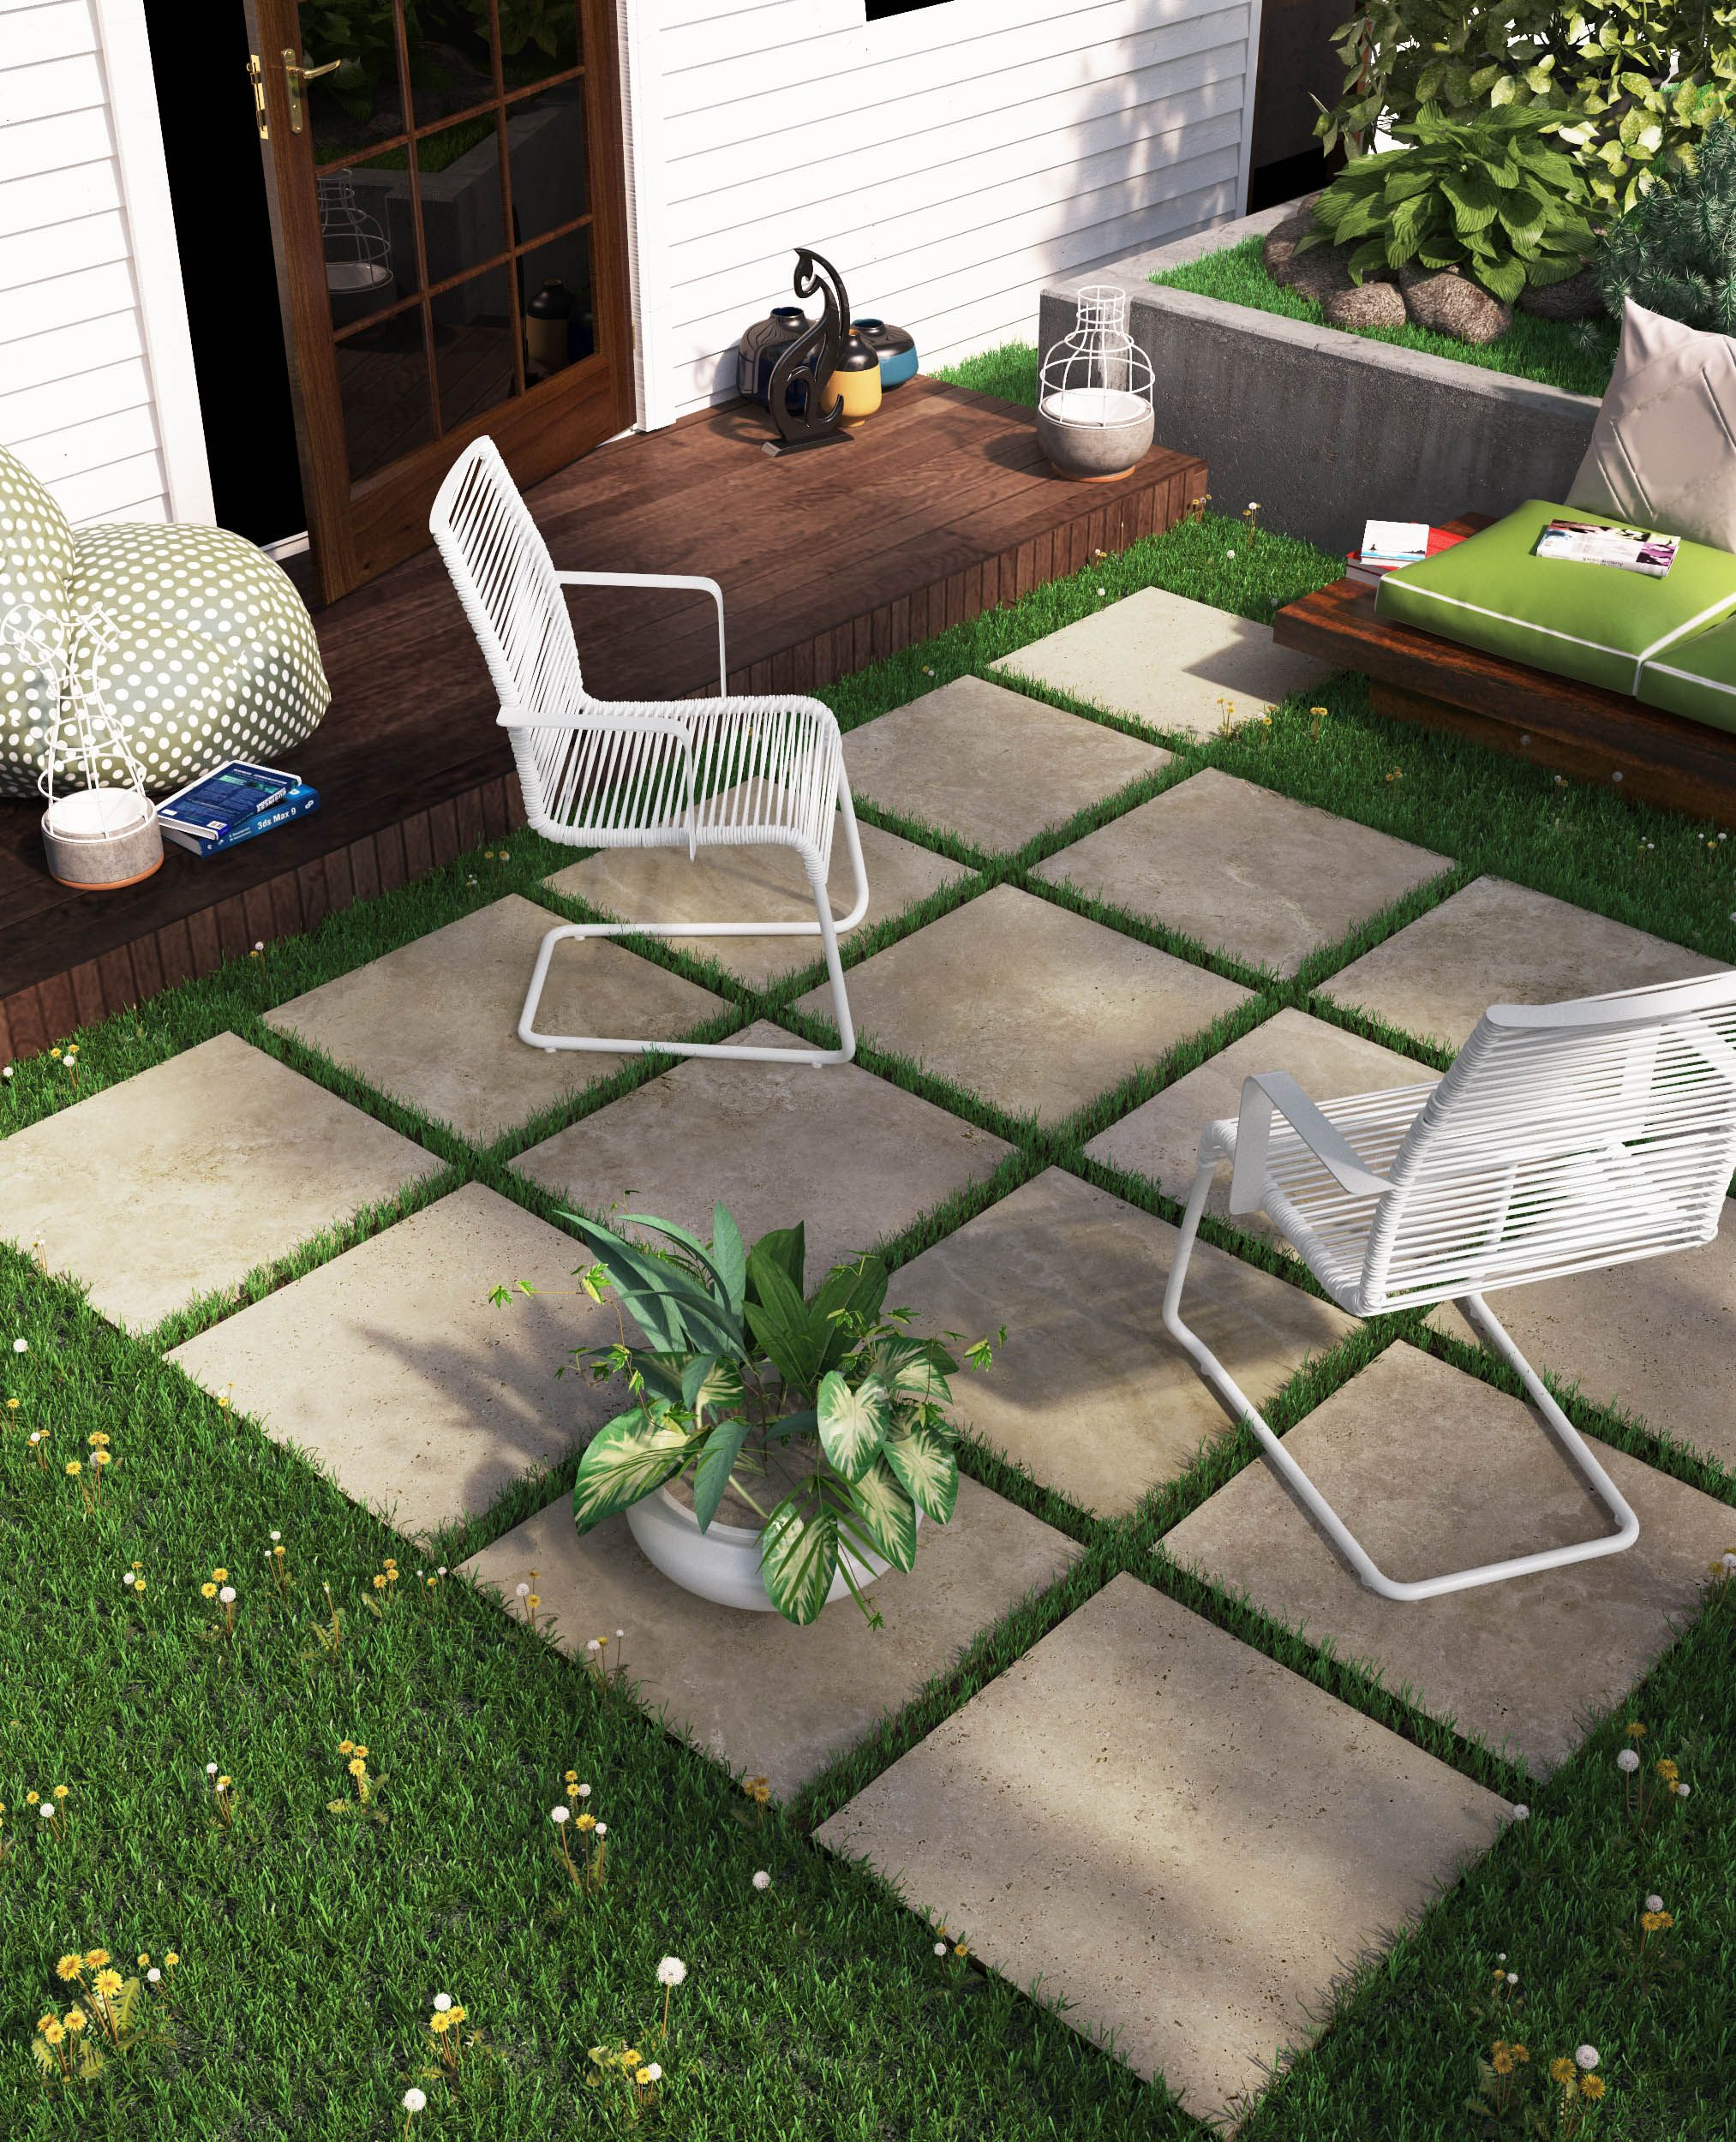 Charmant Outdoor Patio, Sitting Area With Porcelain Patio Stones That Look Like  Travertine But Do Not Require Sealing!